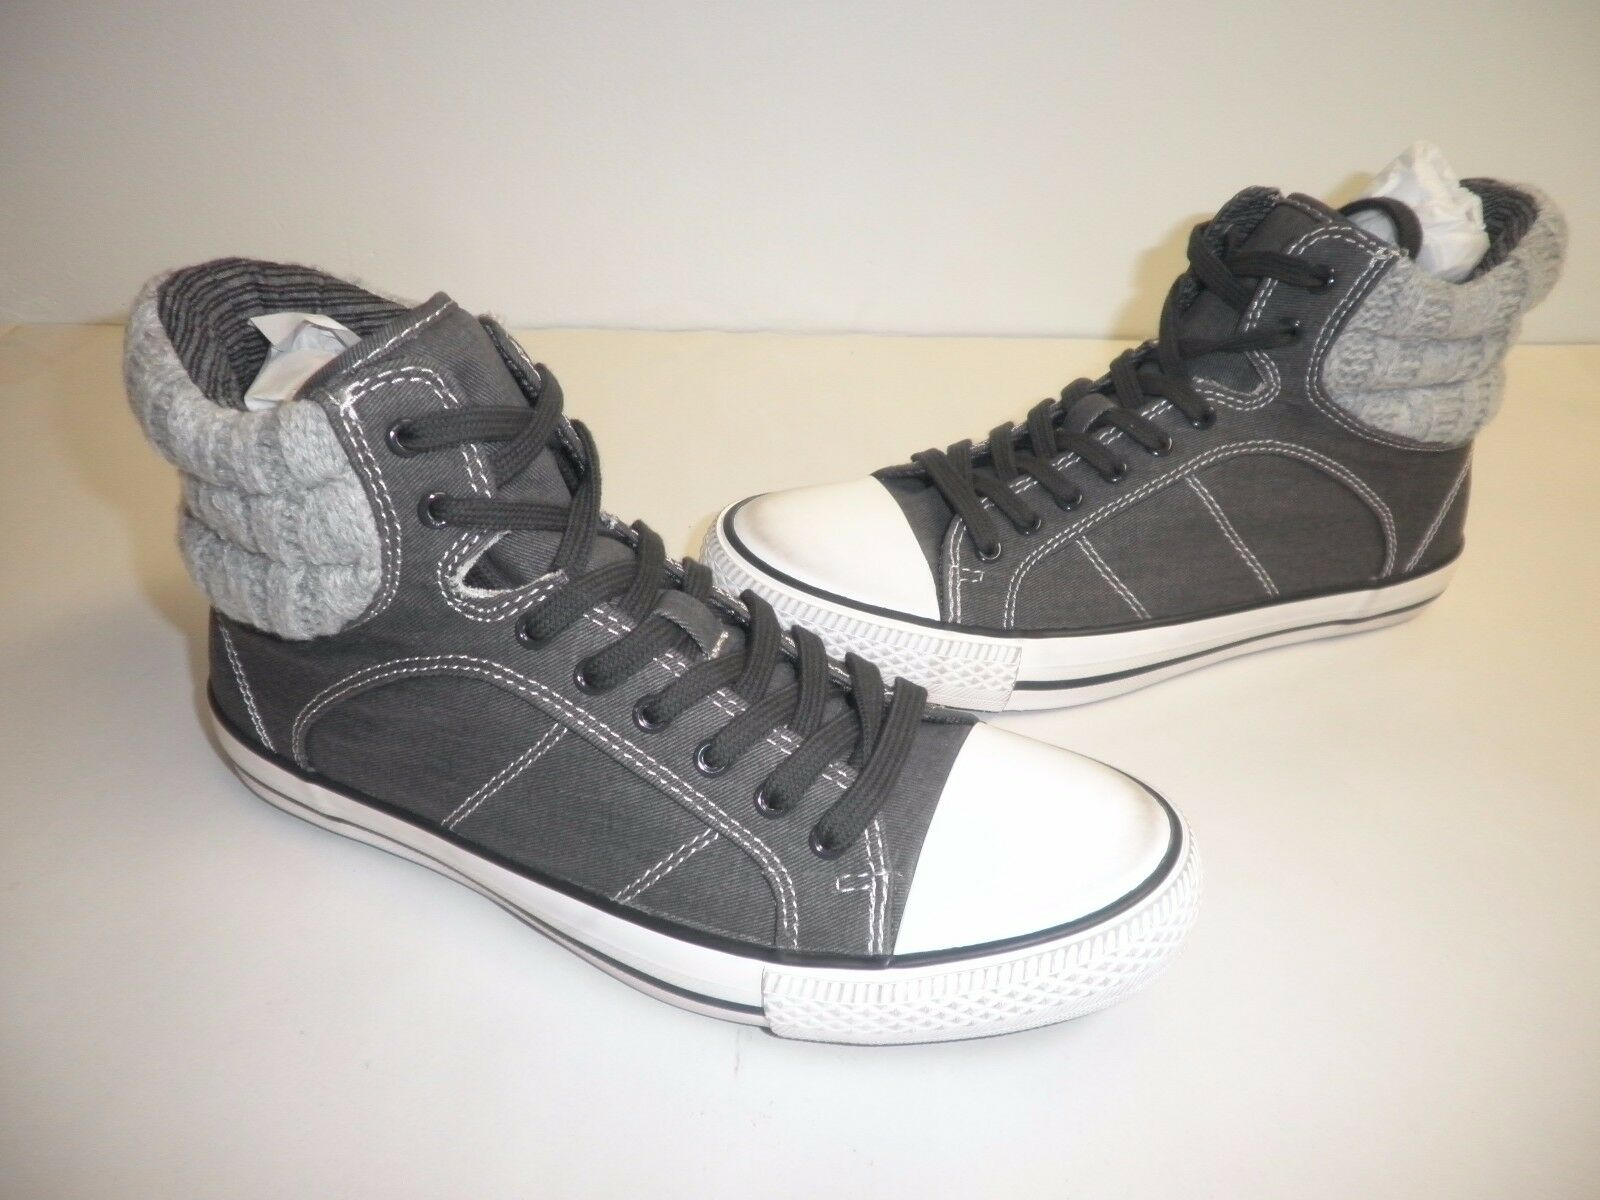 Splendid Size 7.5 M ESSEX Black Grey Fashion High Top Sneakers New Womens shoes